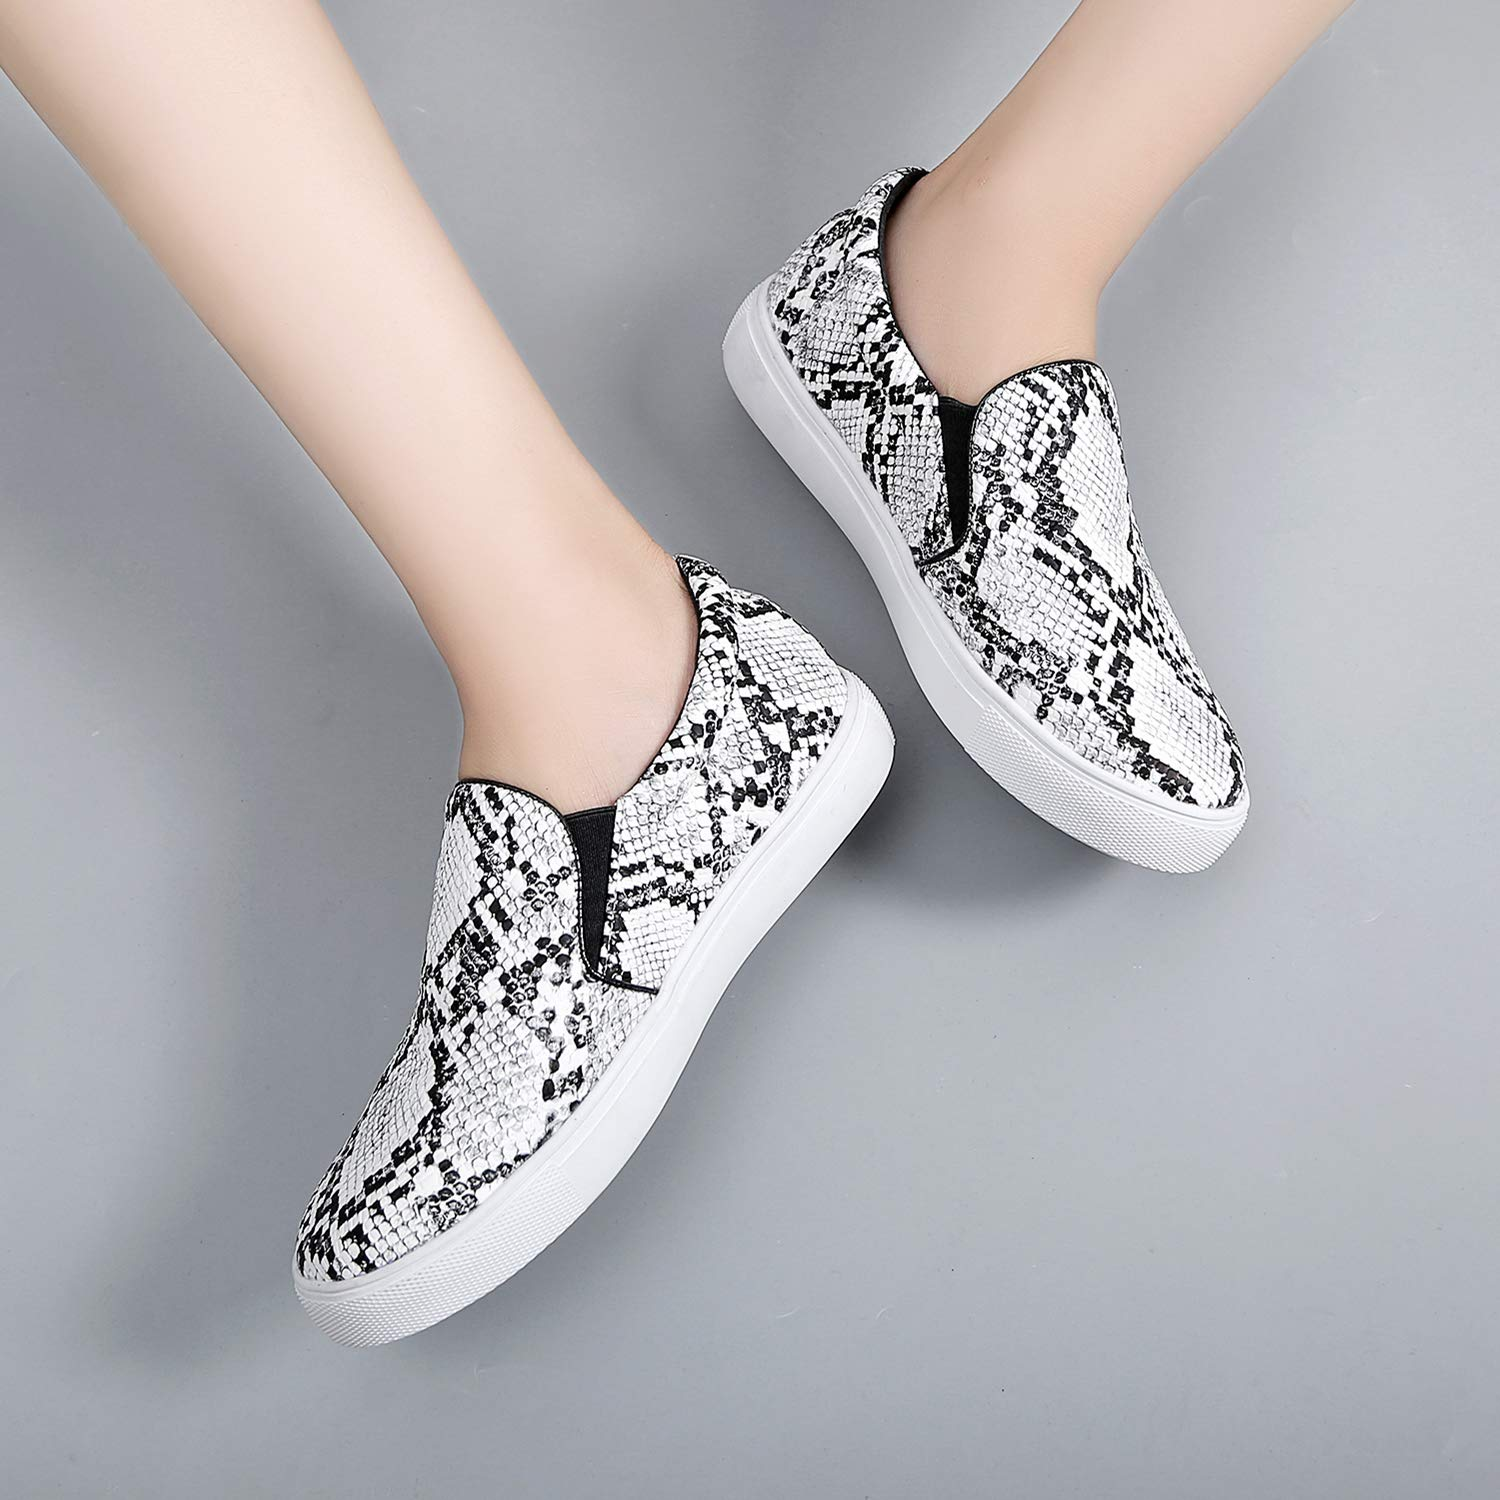 Womens Slip On Sneakers Snake Shoes Casual Comfortable Flats Memory Foam Insoles Faux Snake Skin Anti-Slip for Walk Stand Work 6-10.5